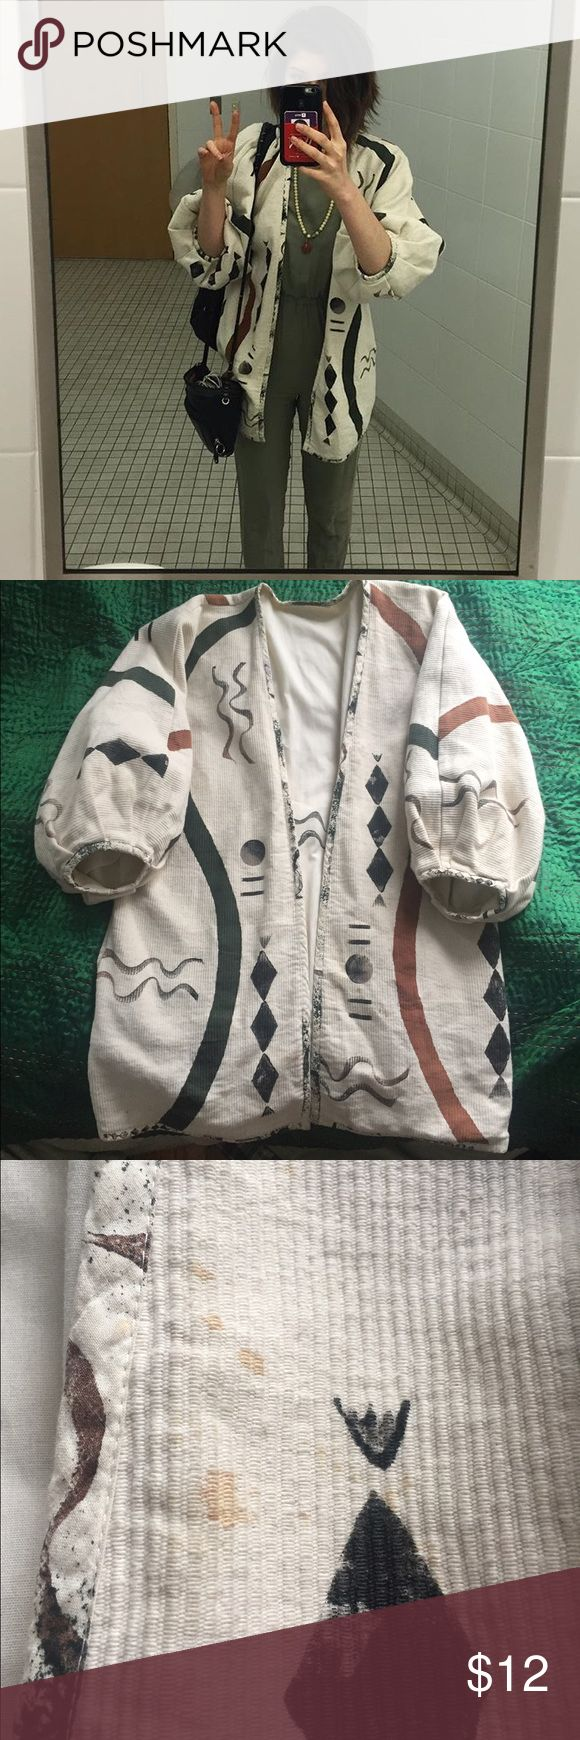 Vintage kimono jacket Super cozy and fluffy! Thrifted this in Austin, TX. it is vintage and has been worn quite a lot, price reflects the few discolorations and small stain on inside and out. Inside its just little pen / ink stains, outside is slightly rusty colored speckles. No huge stains or anything that would be truly noticeable though, never bothered me Vintage Jackets & Coats